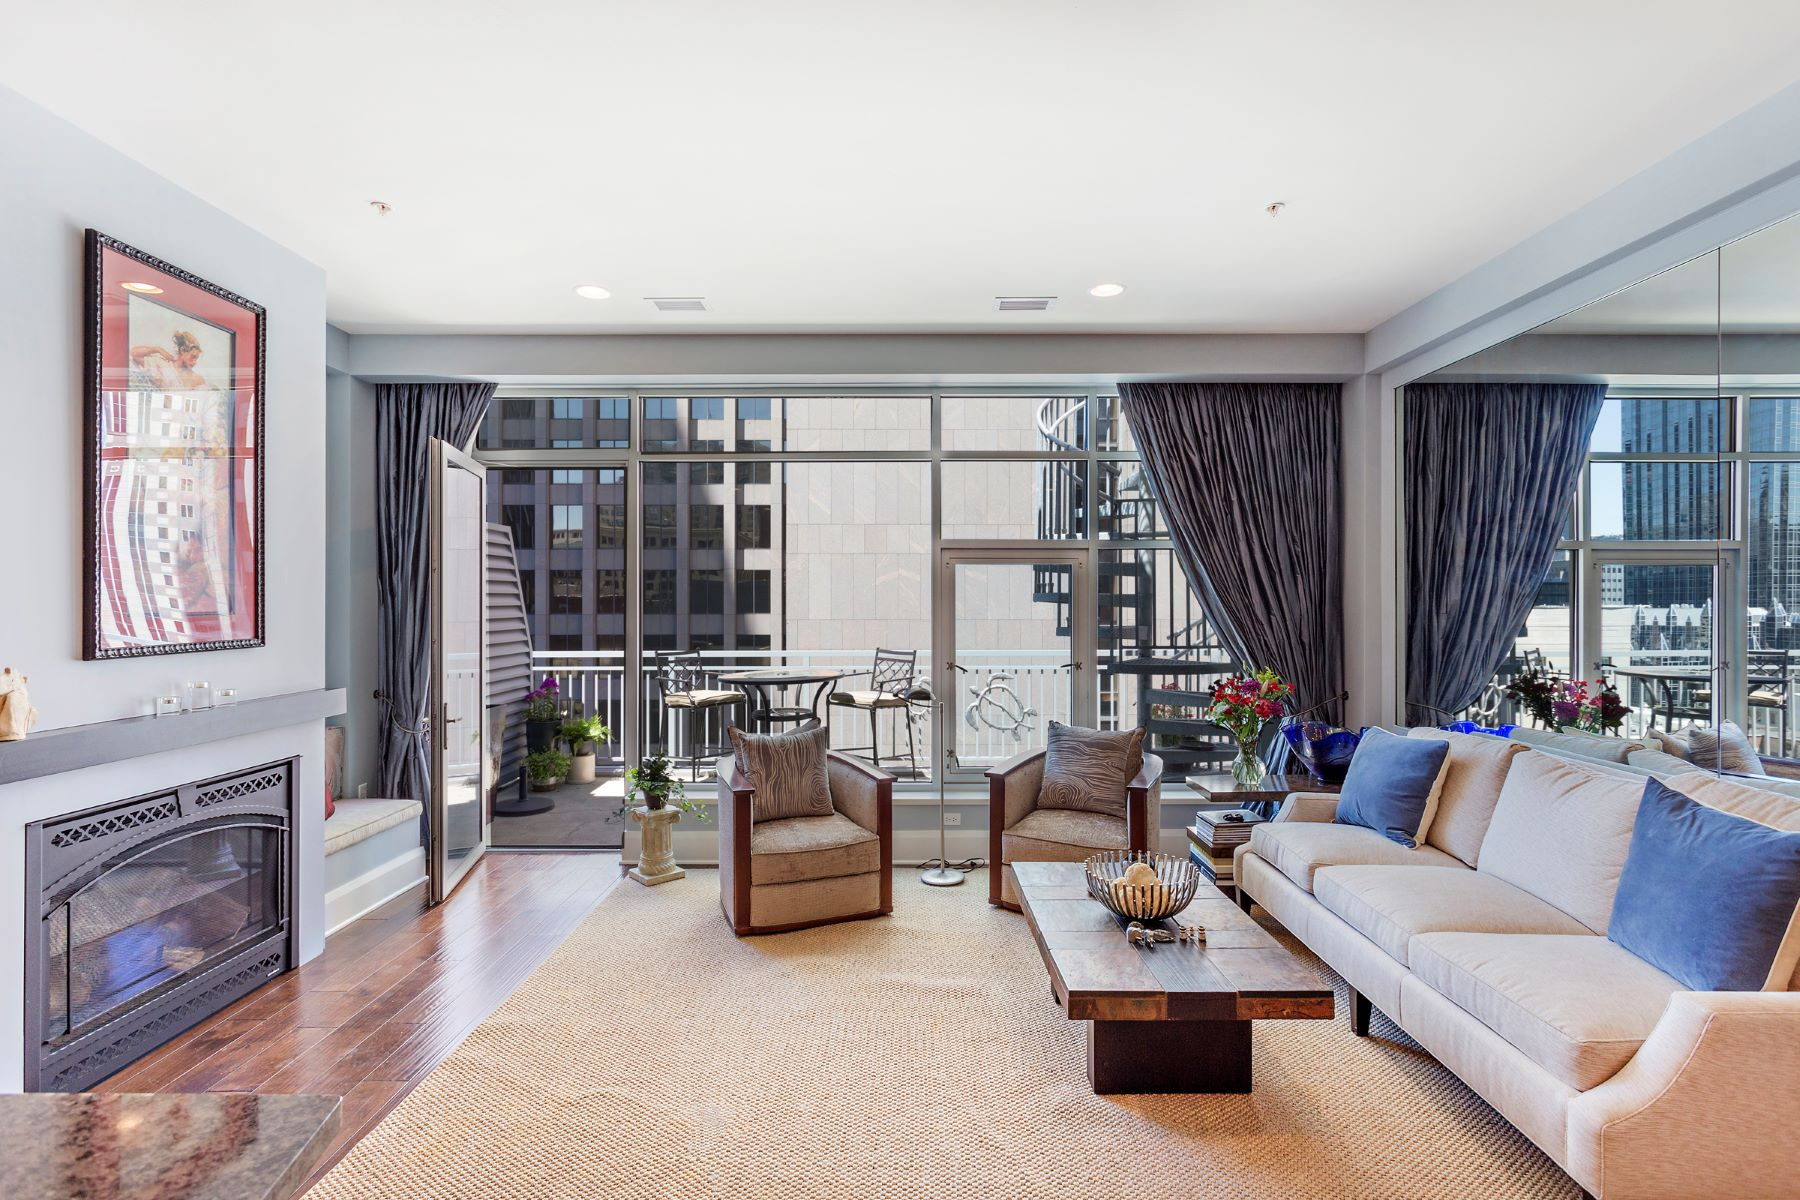 Additional photo for property listing at Contemporary Fifth Avenue Penthouse at Piatt Place 301 5th Avenue No. 705 Pittsburgh, Pennsylvania 15222 United States